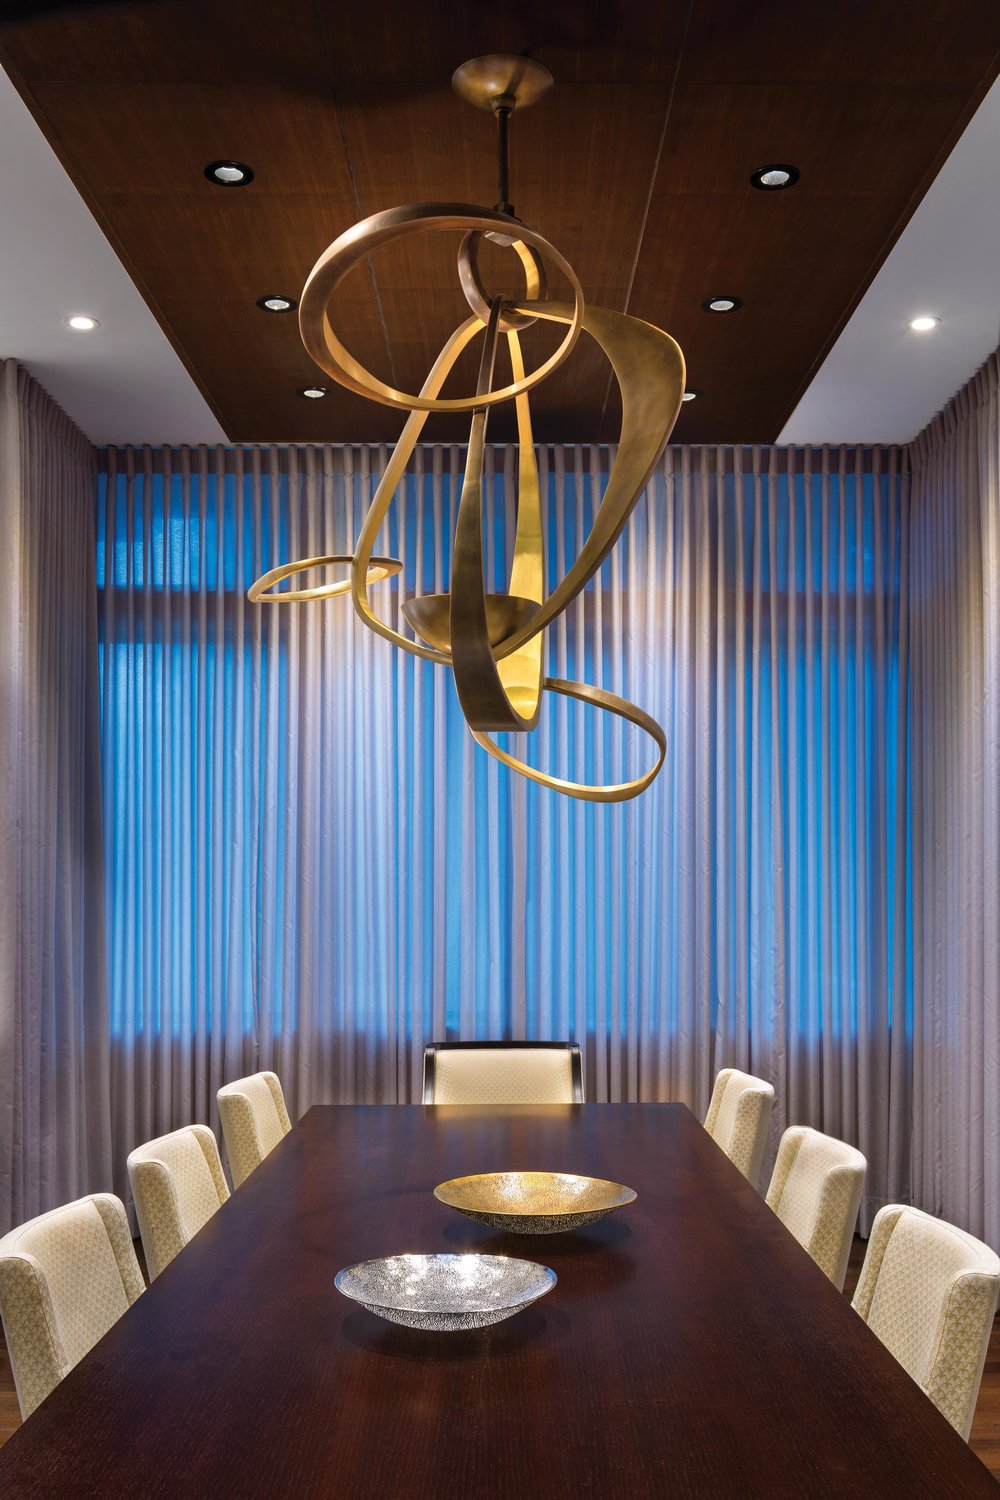 In the main dining room, a decorative walnut ceiling feature accentuates the axis while concealing the lighting alcoves and air vents. The chandelier centres the table and anchors the room, which is situated between the kitchen and living room without separating walls.